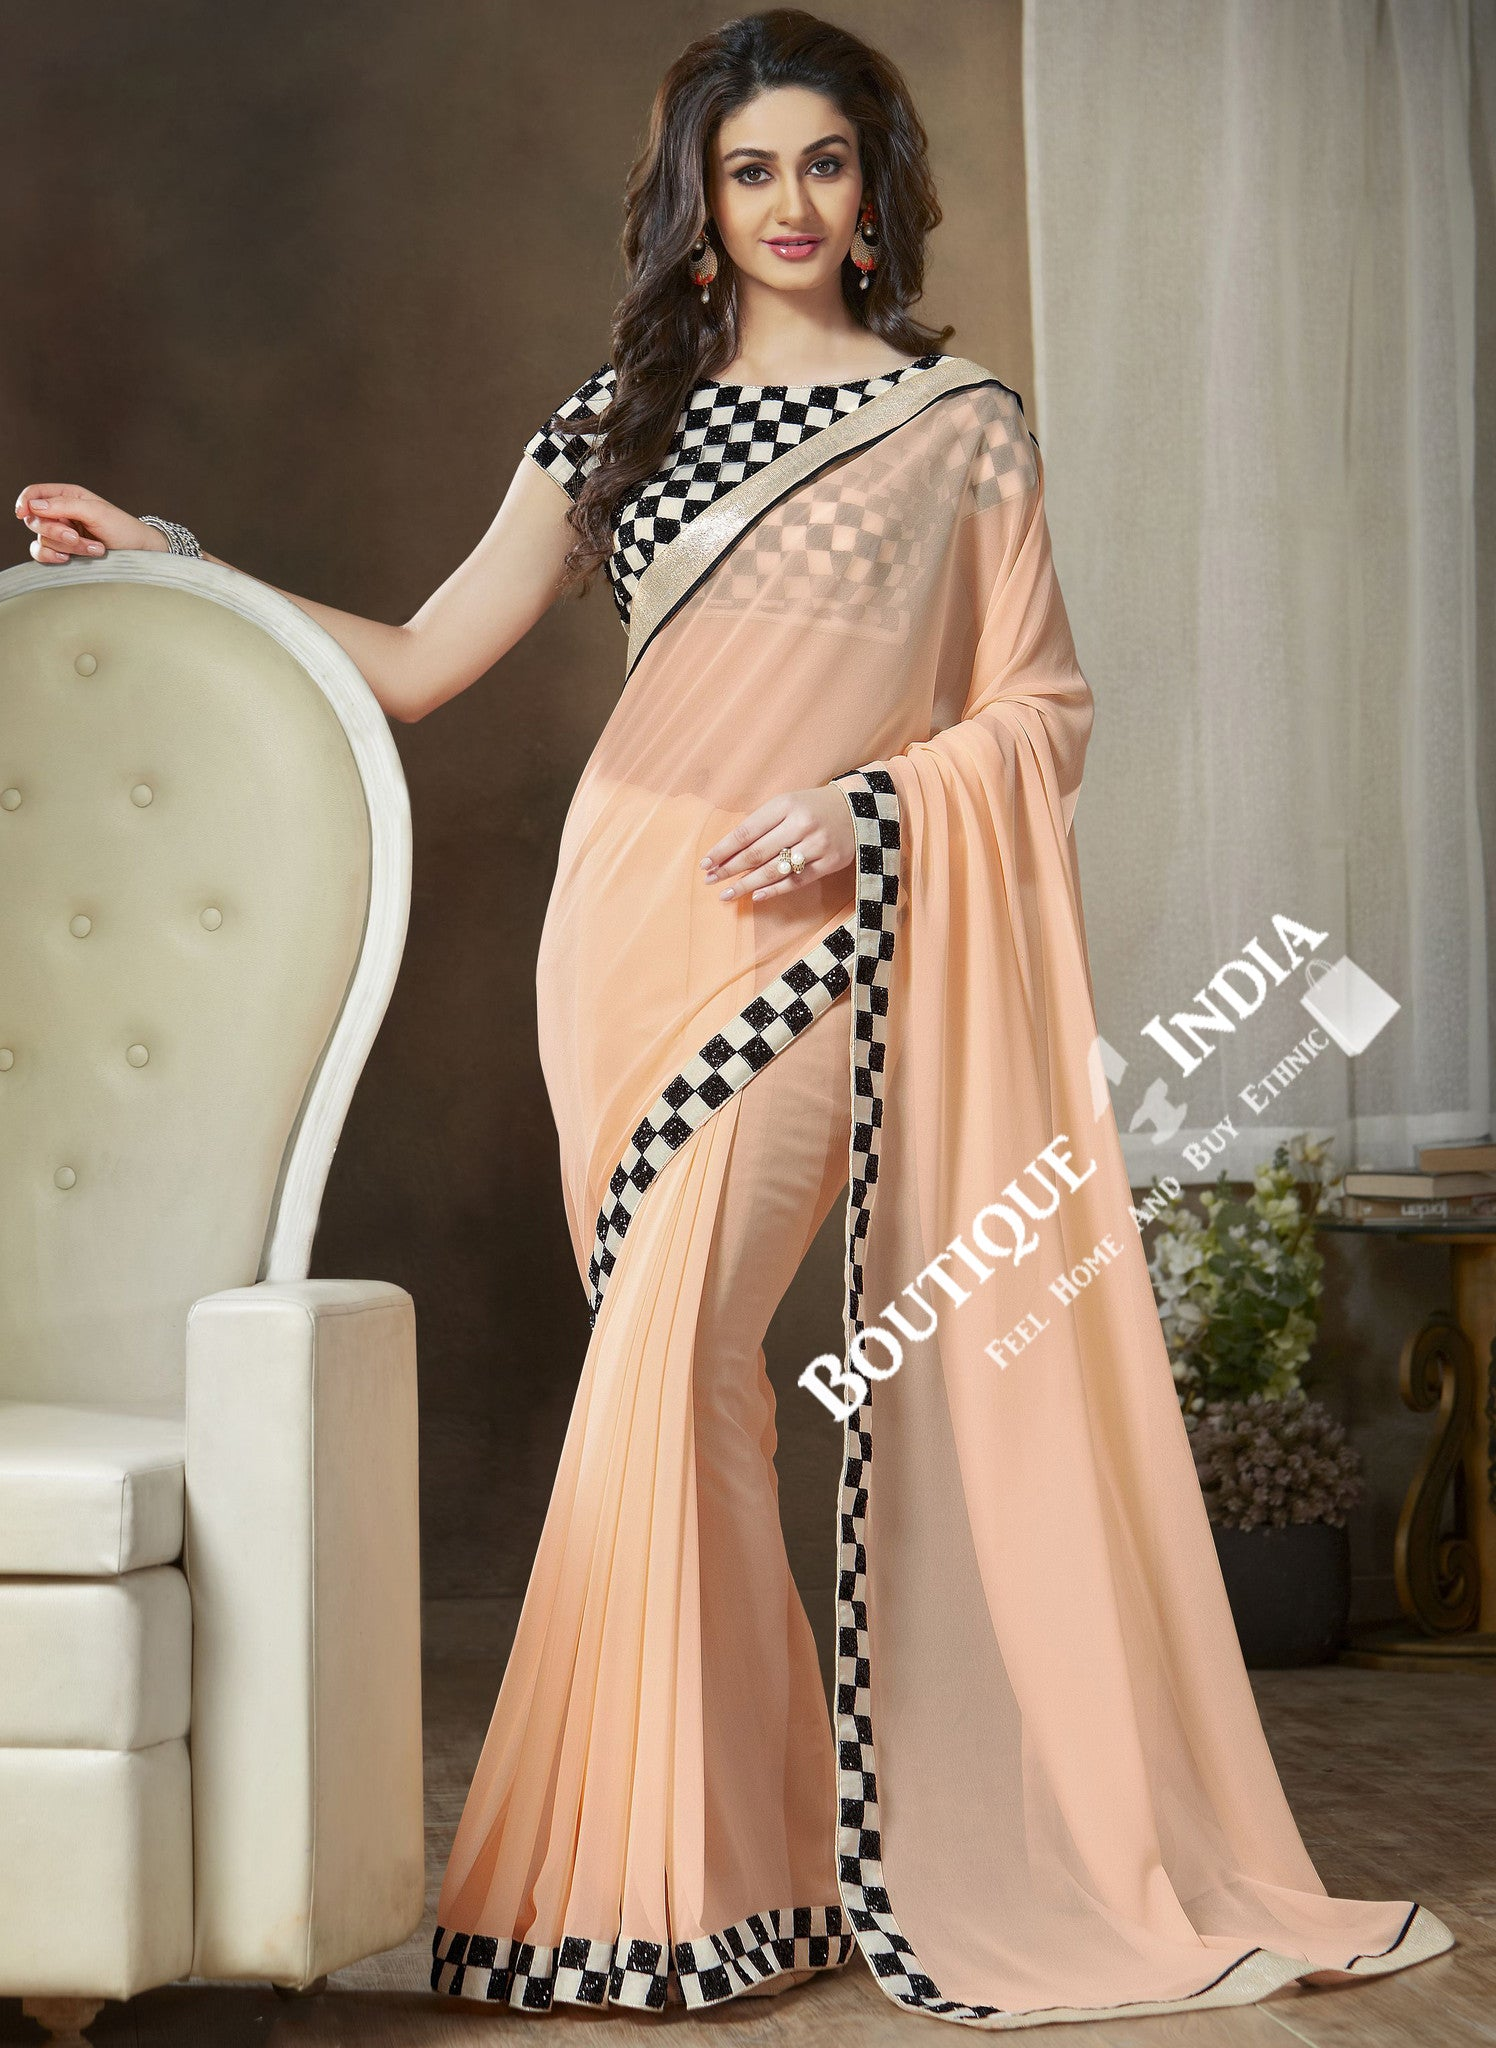 Net and Chiffon Silk Saree in Peach, Black and White - Boutique4India Inc.